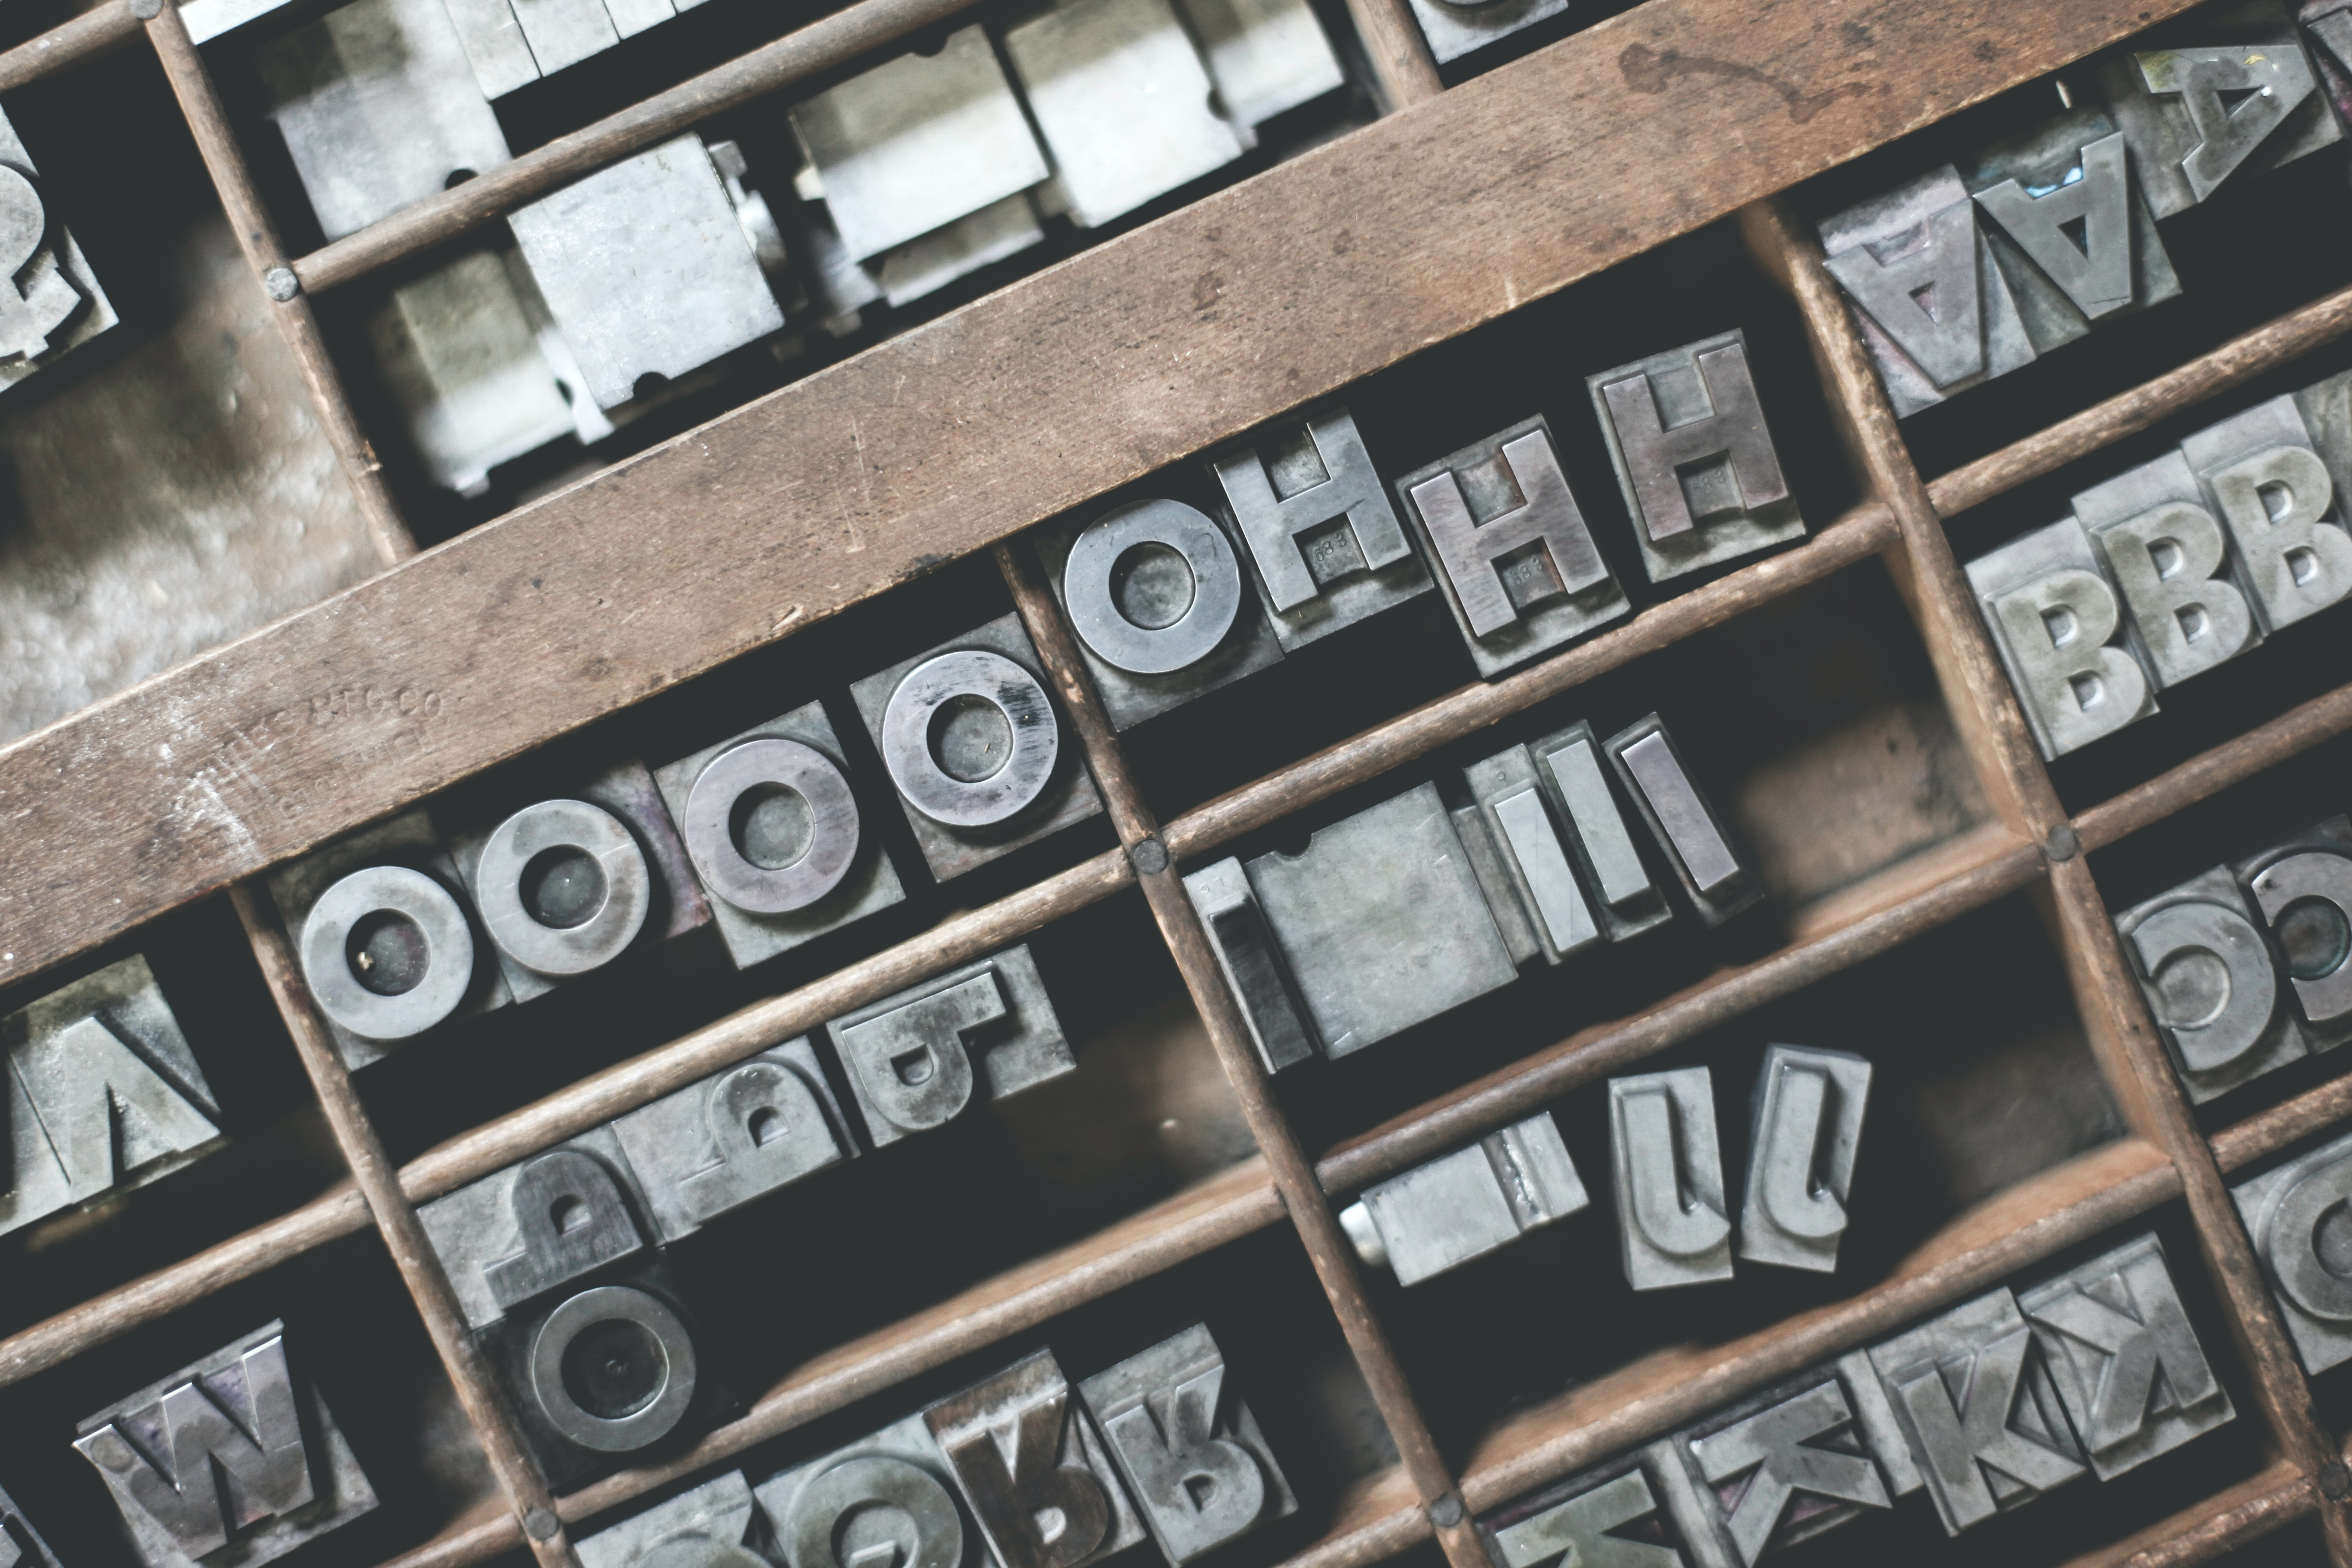 Well used letters from a letterpress, set into rows